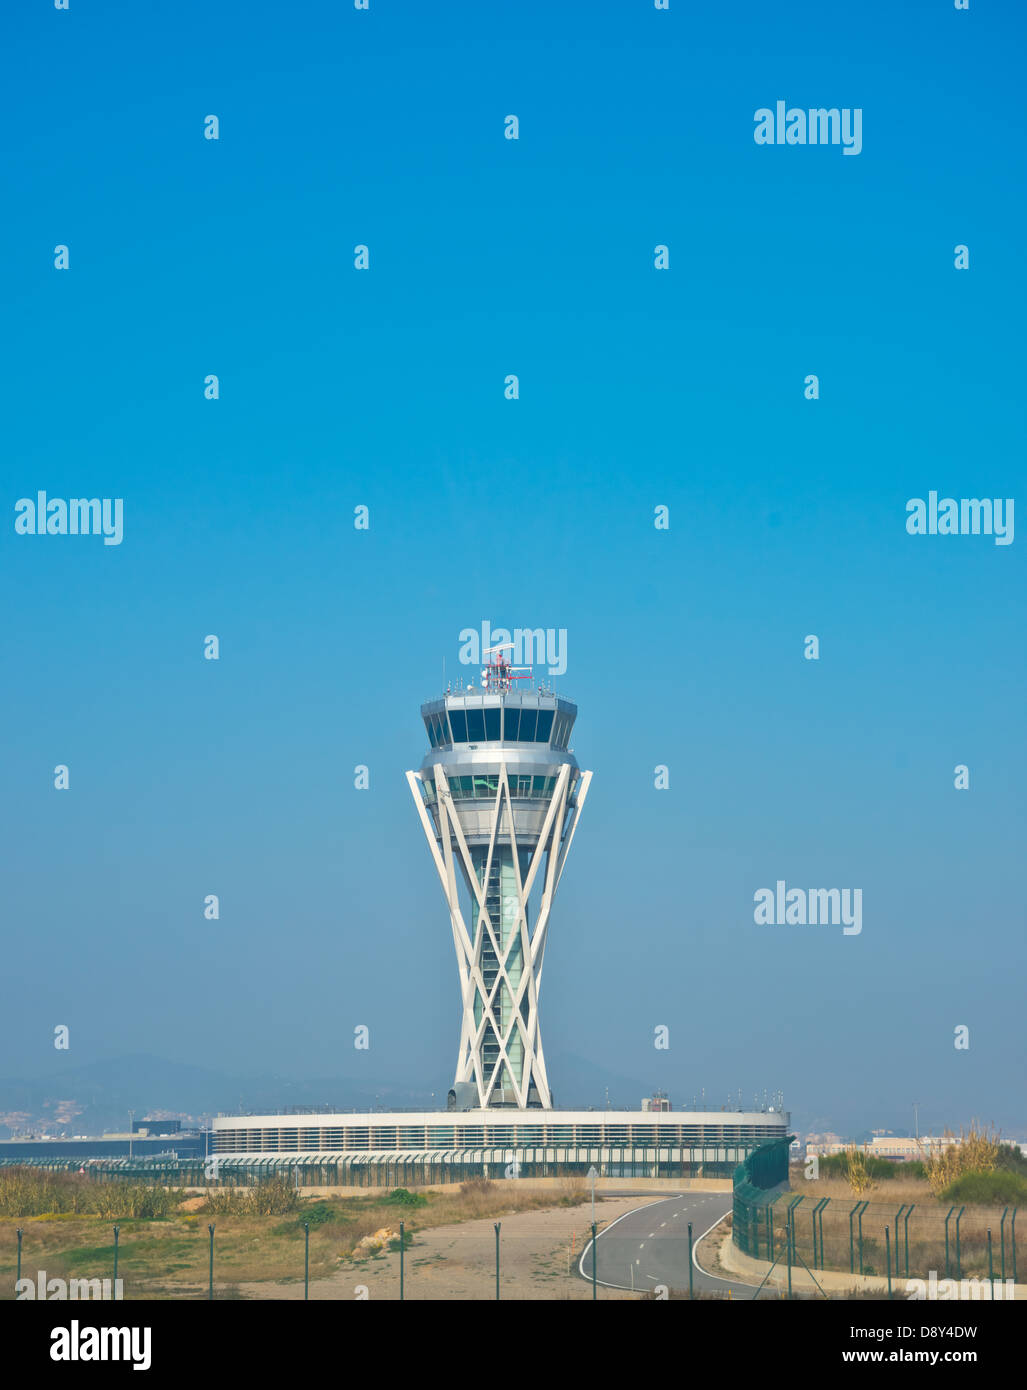 Air traffic control tower at an airport - Stock Image